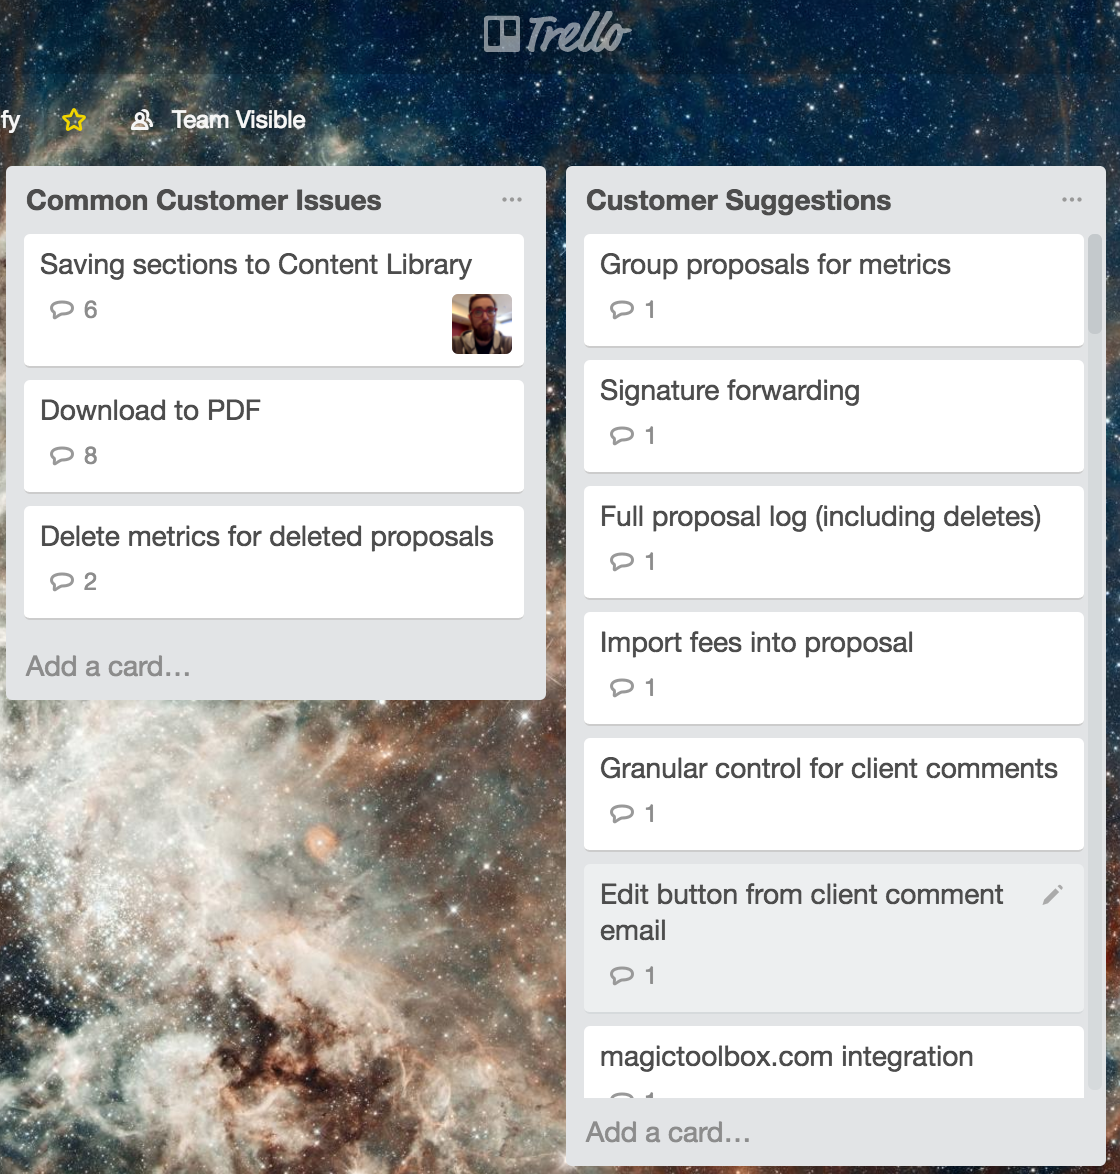 Trello board for common customer issues and customer suggestions